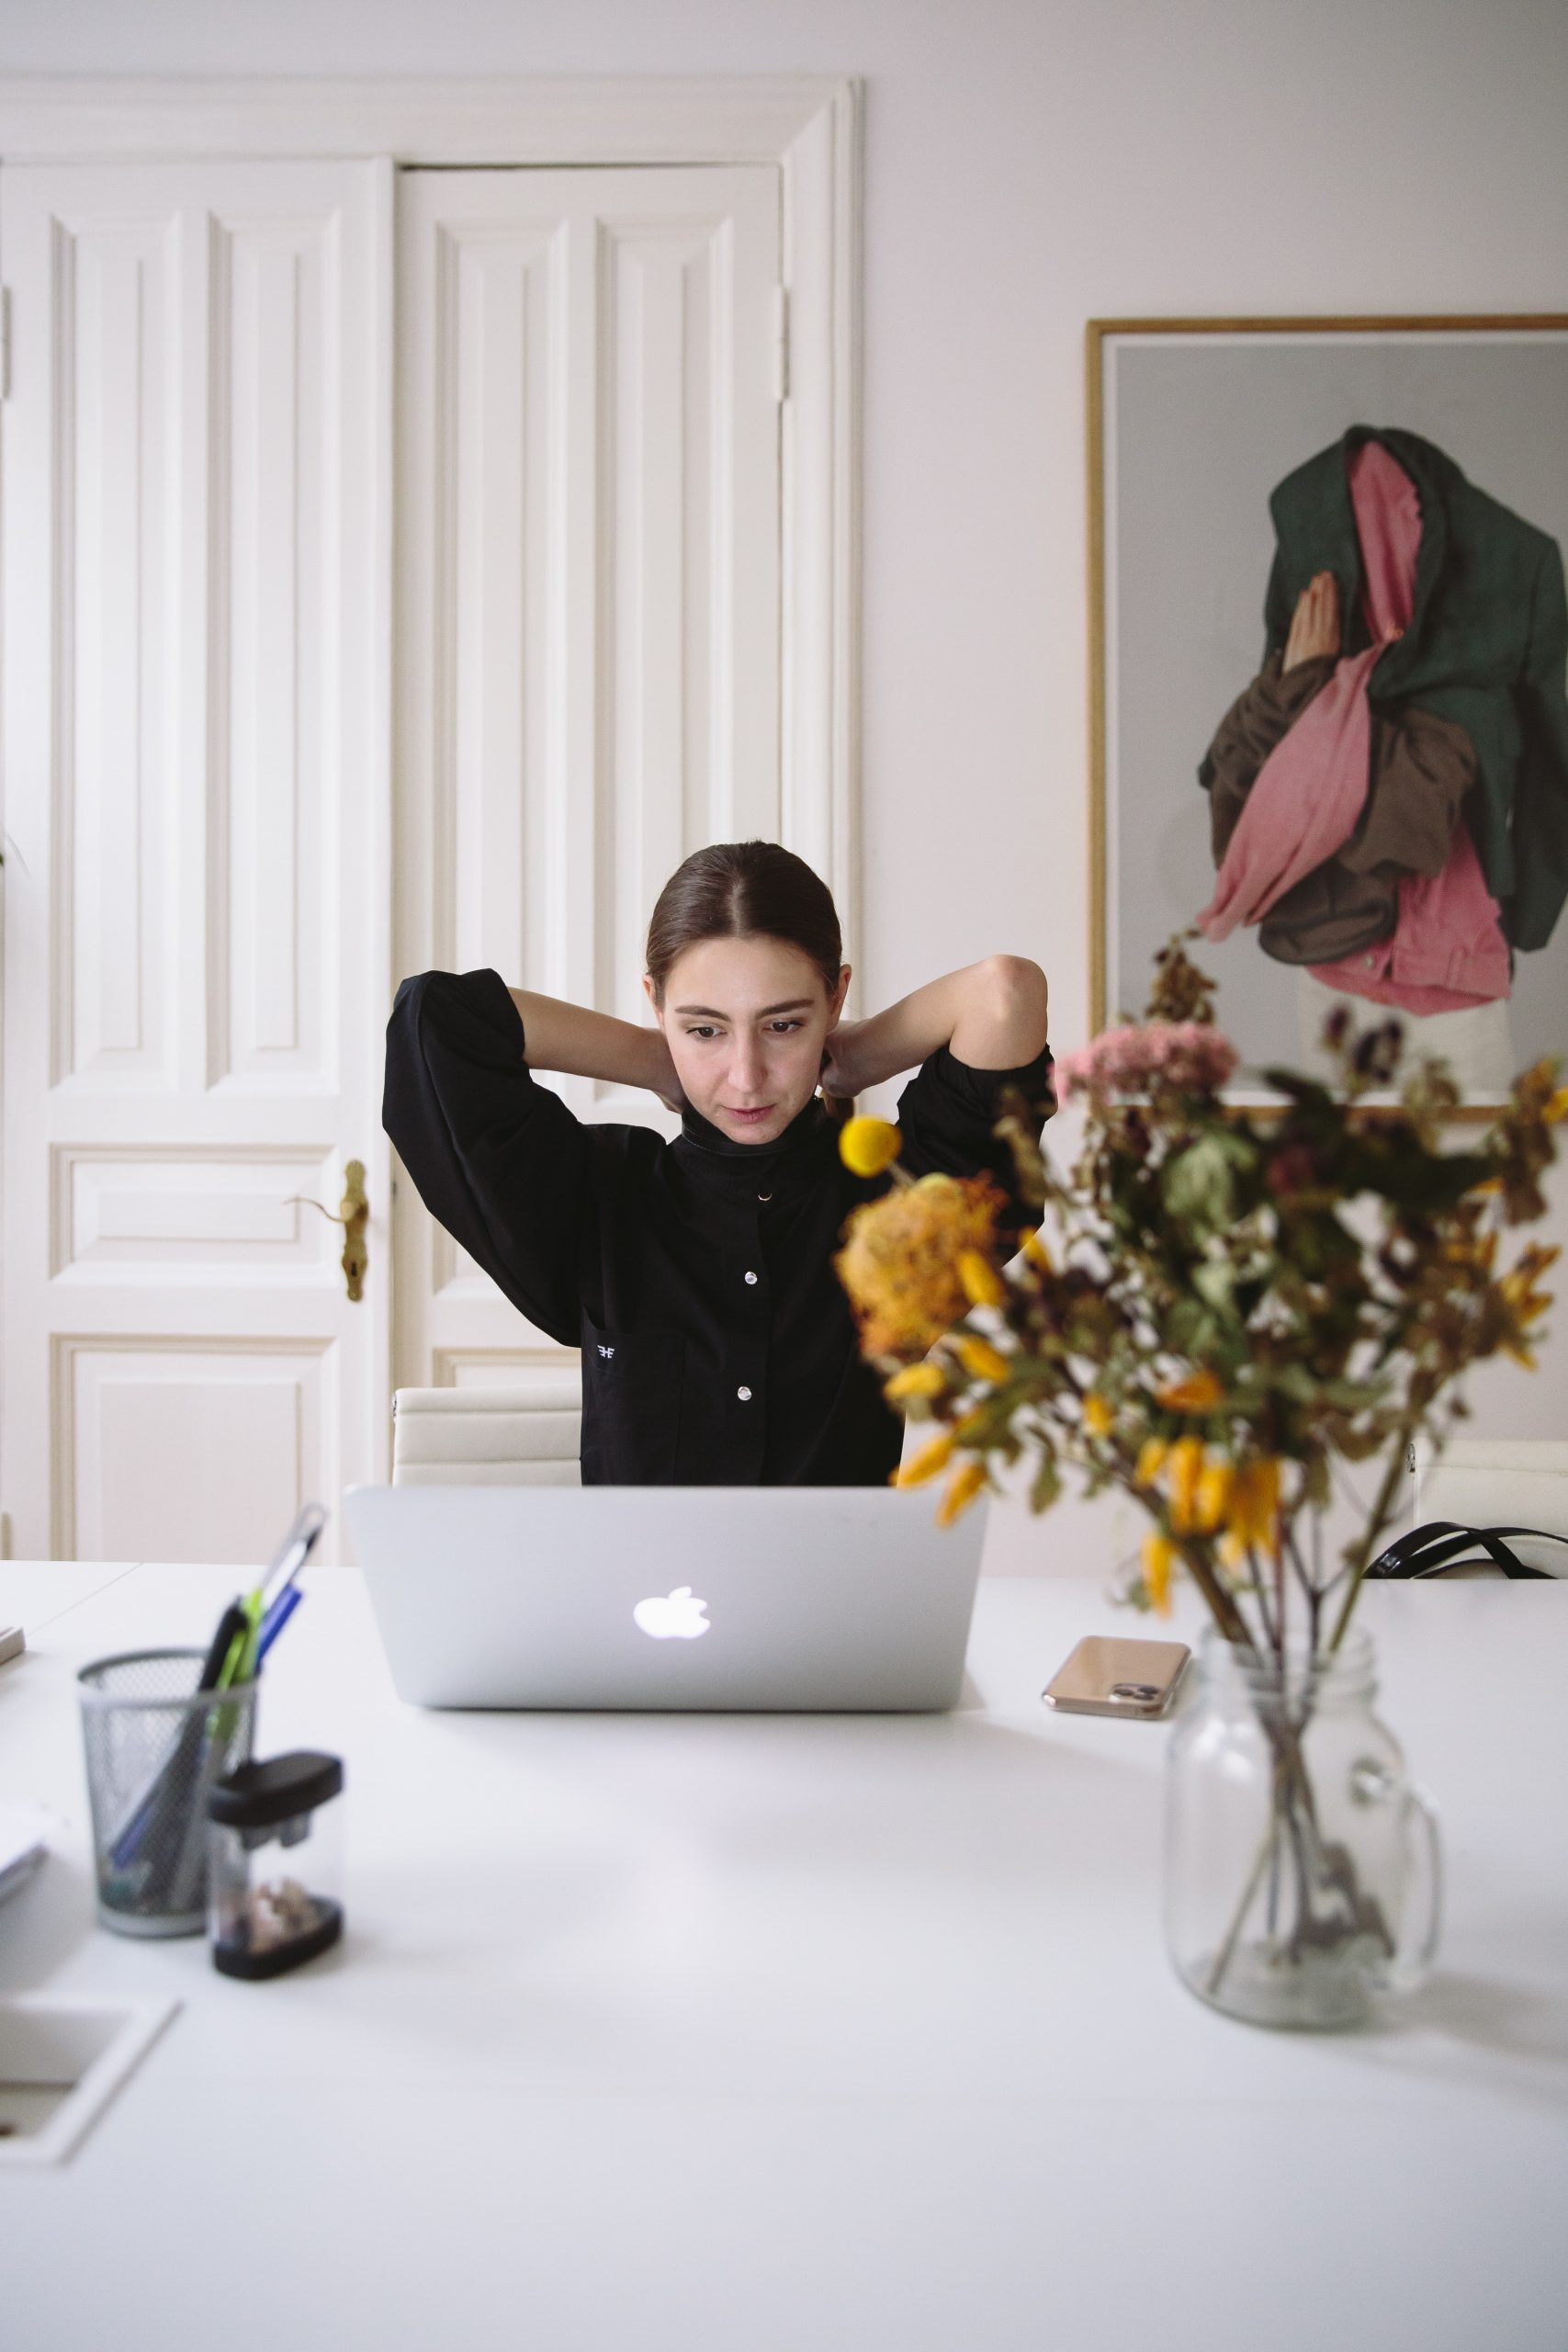 How to Make Remote Work Transition Smooth